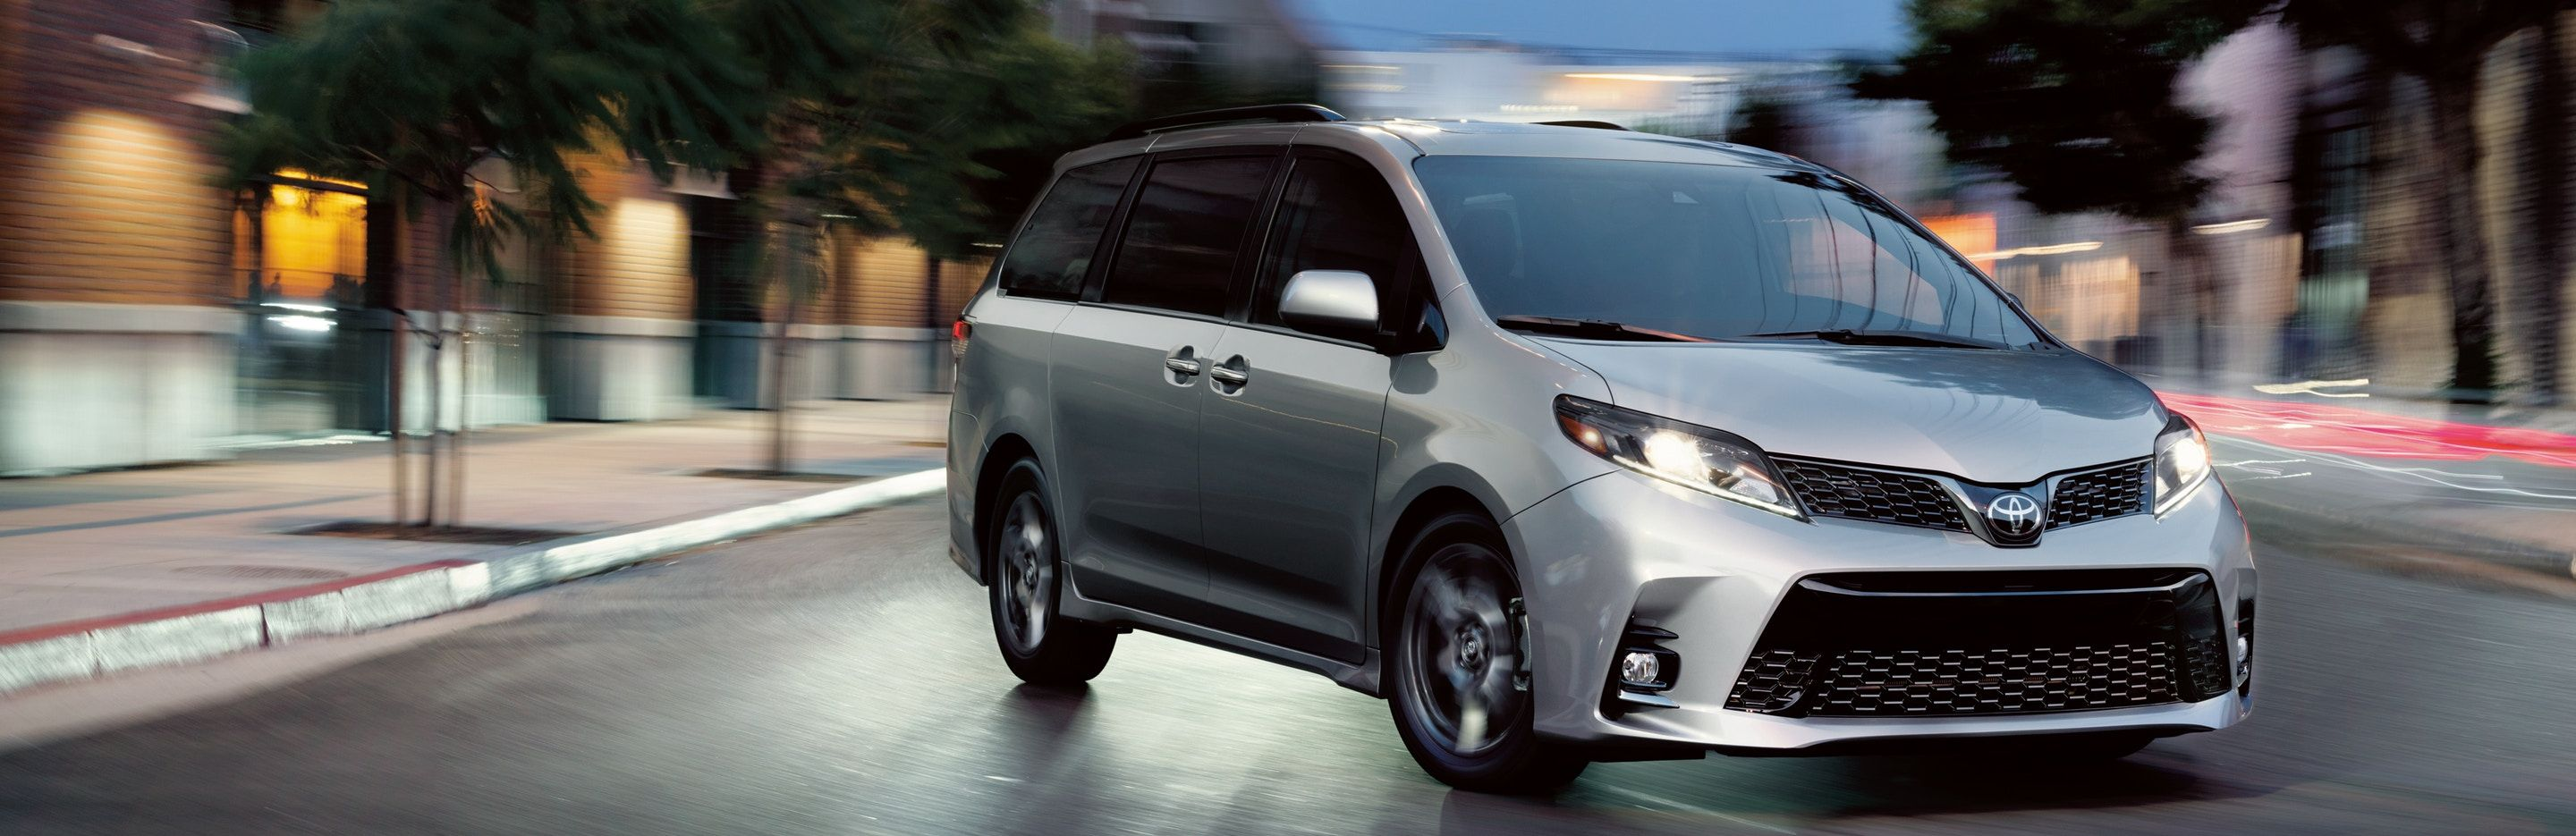 2020 Toyota Sienna for Sale near Glassboro, NJ